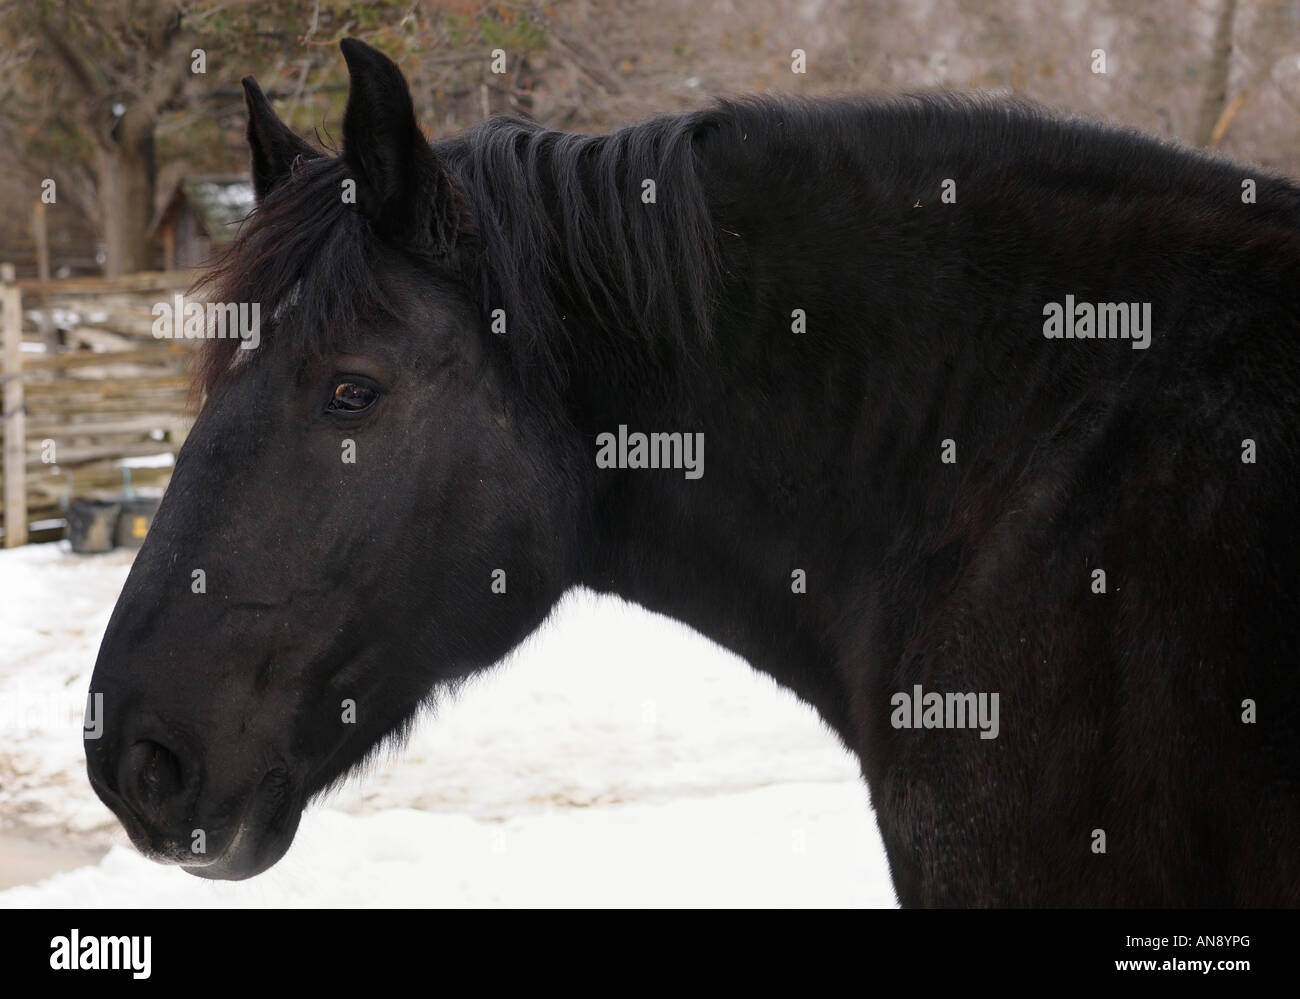 Close Up Of A Black Clydesdale Horse Head At Black Creek Pioneer Stock Photo Alamy